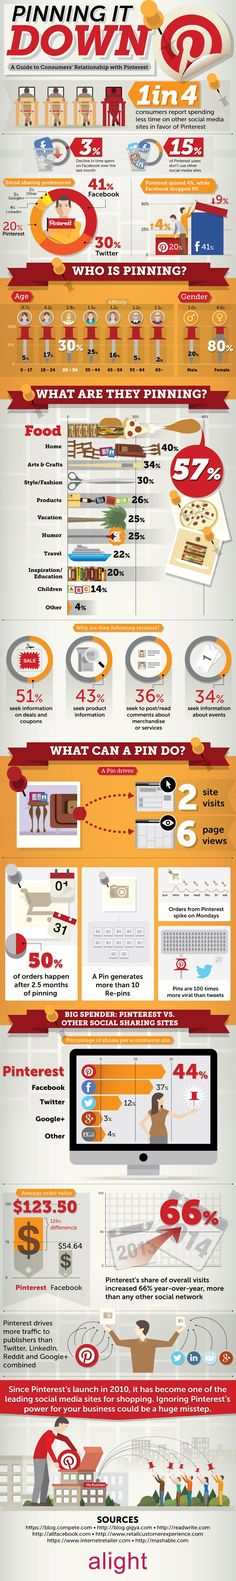 Pinning it Down: A Guide to Consumers' Relationship with #Pinterest - #socialmedia #infographic #seo #marketing #digital #website